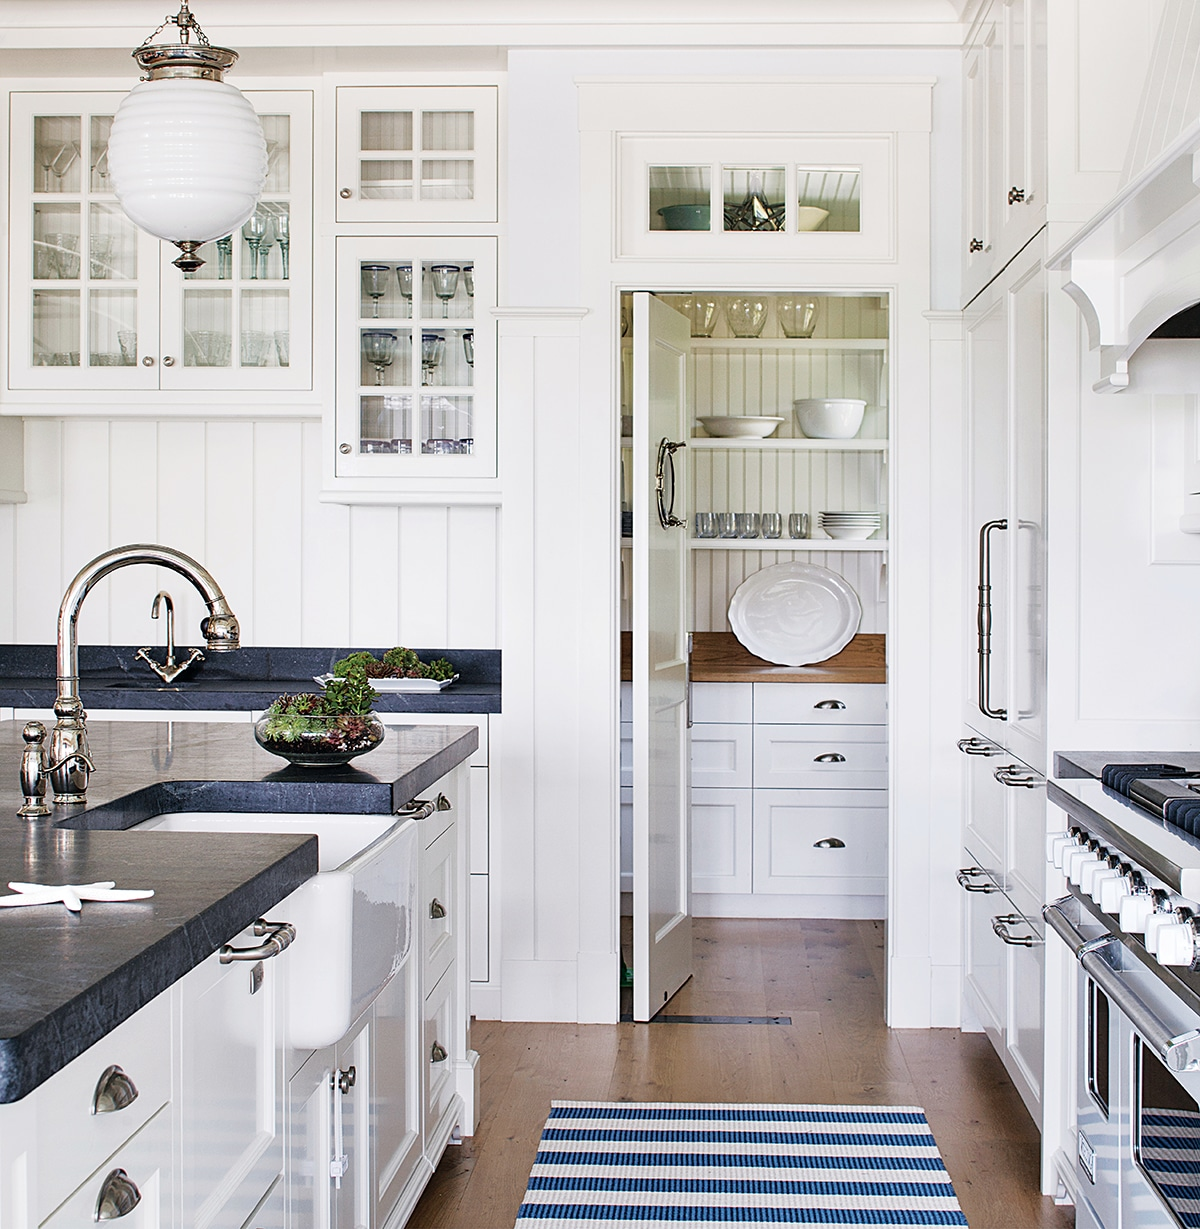 Where Do You Store Your Dishes The Inspired Room